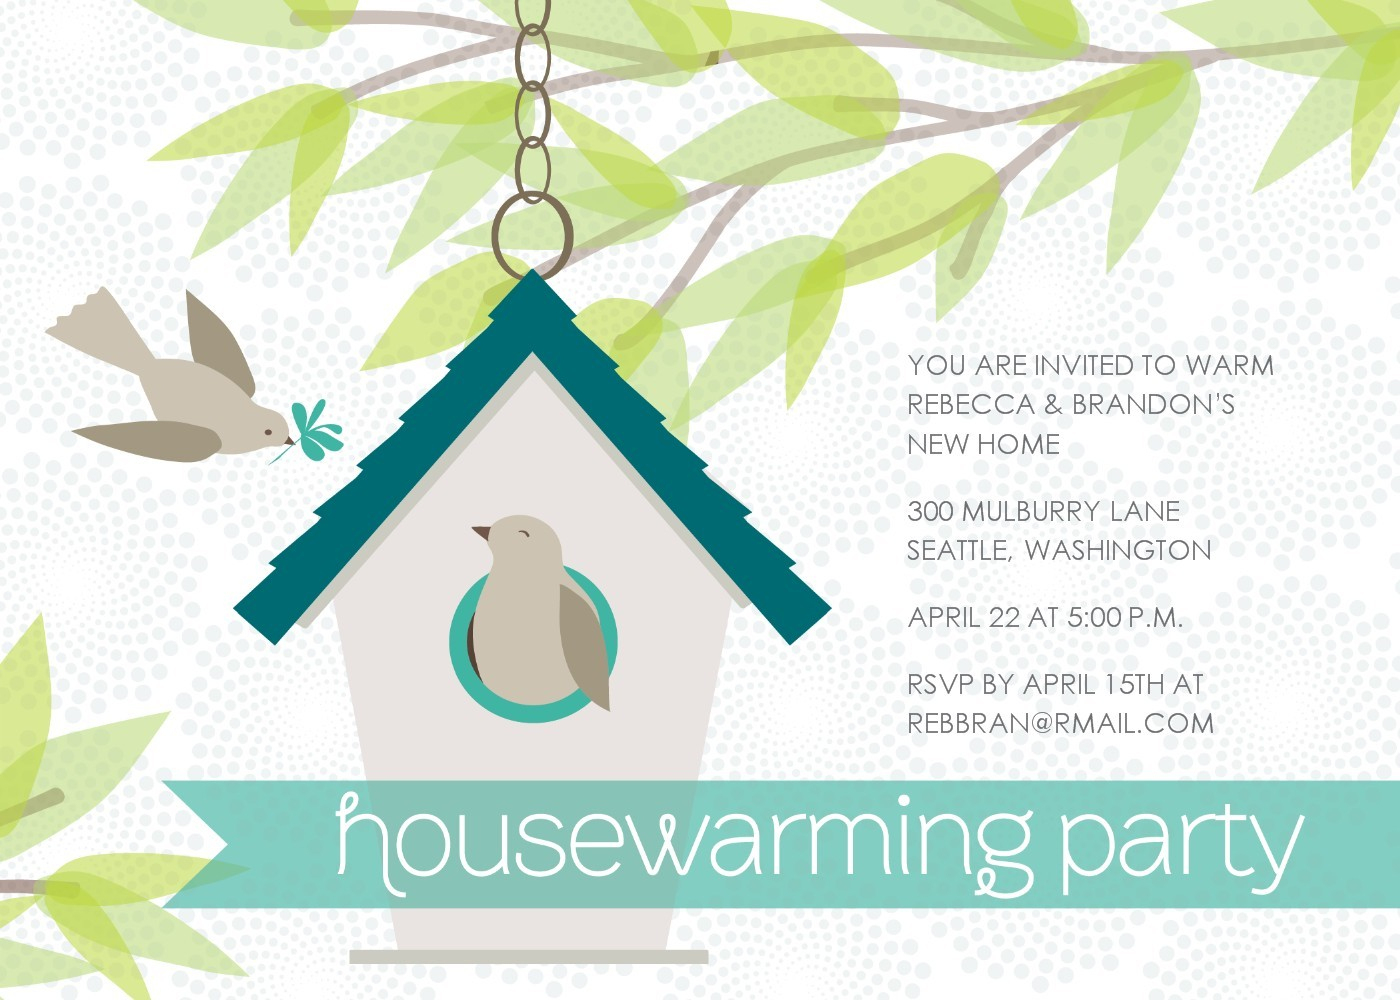 Free Printable Housewarming Invitations Cards - Joomlaexploit - Free Printable Housewarming Invitations Cards